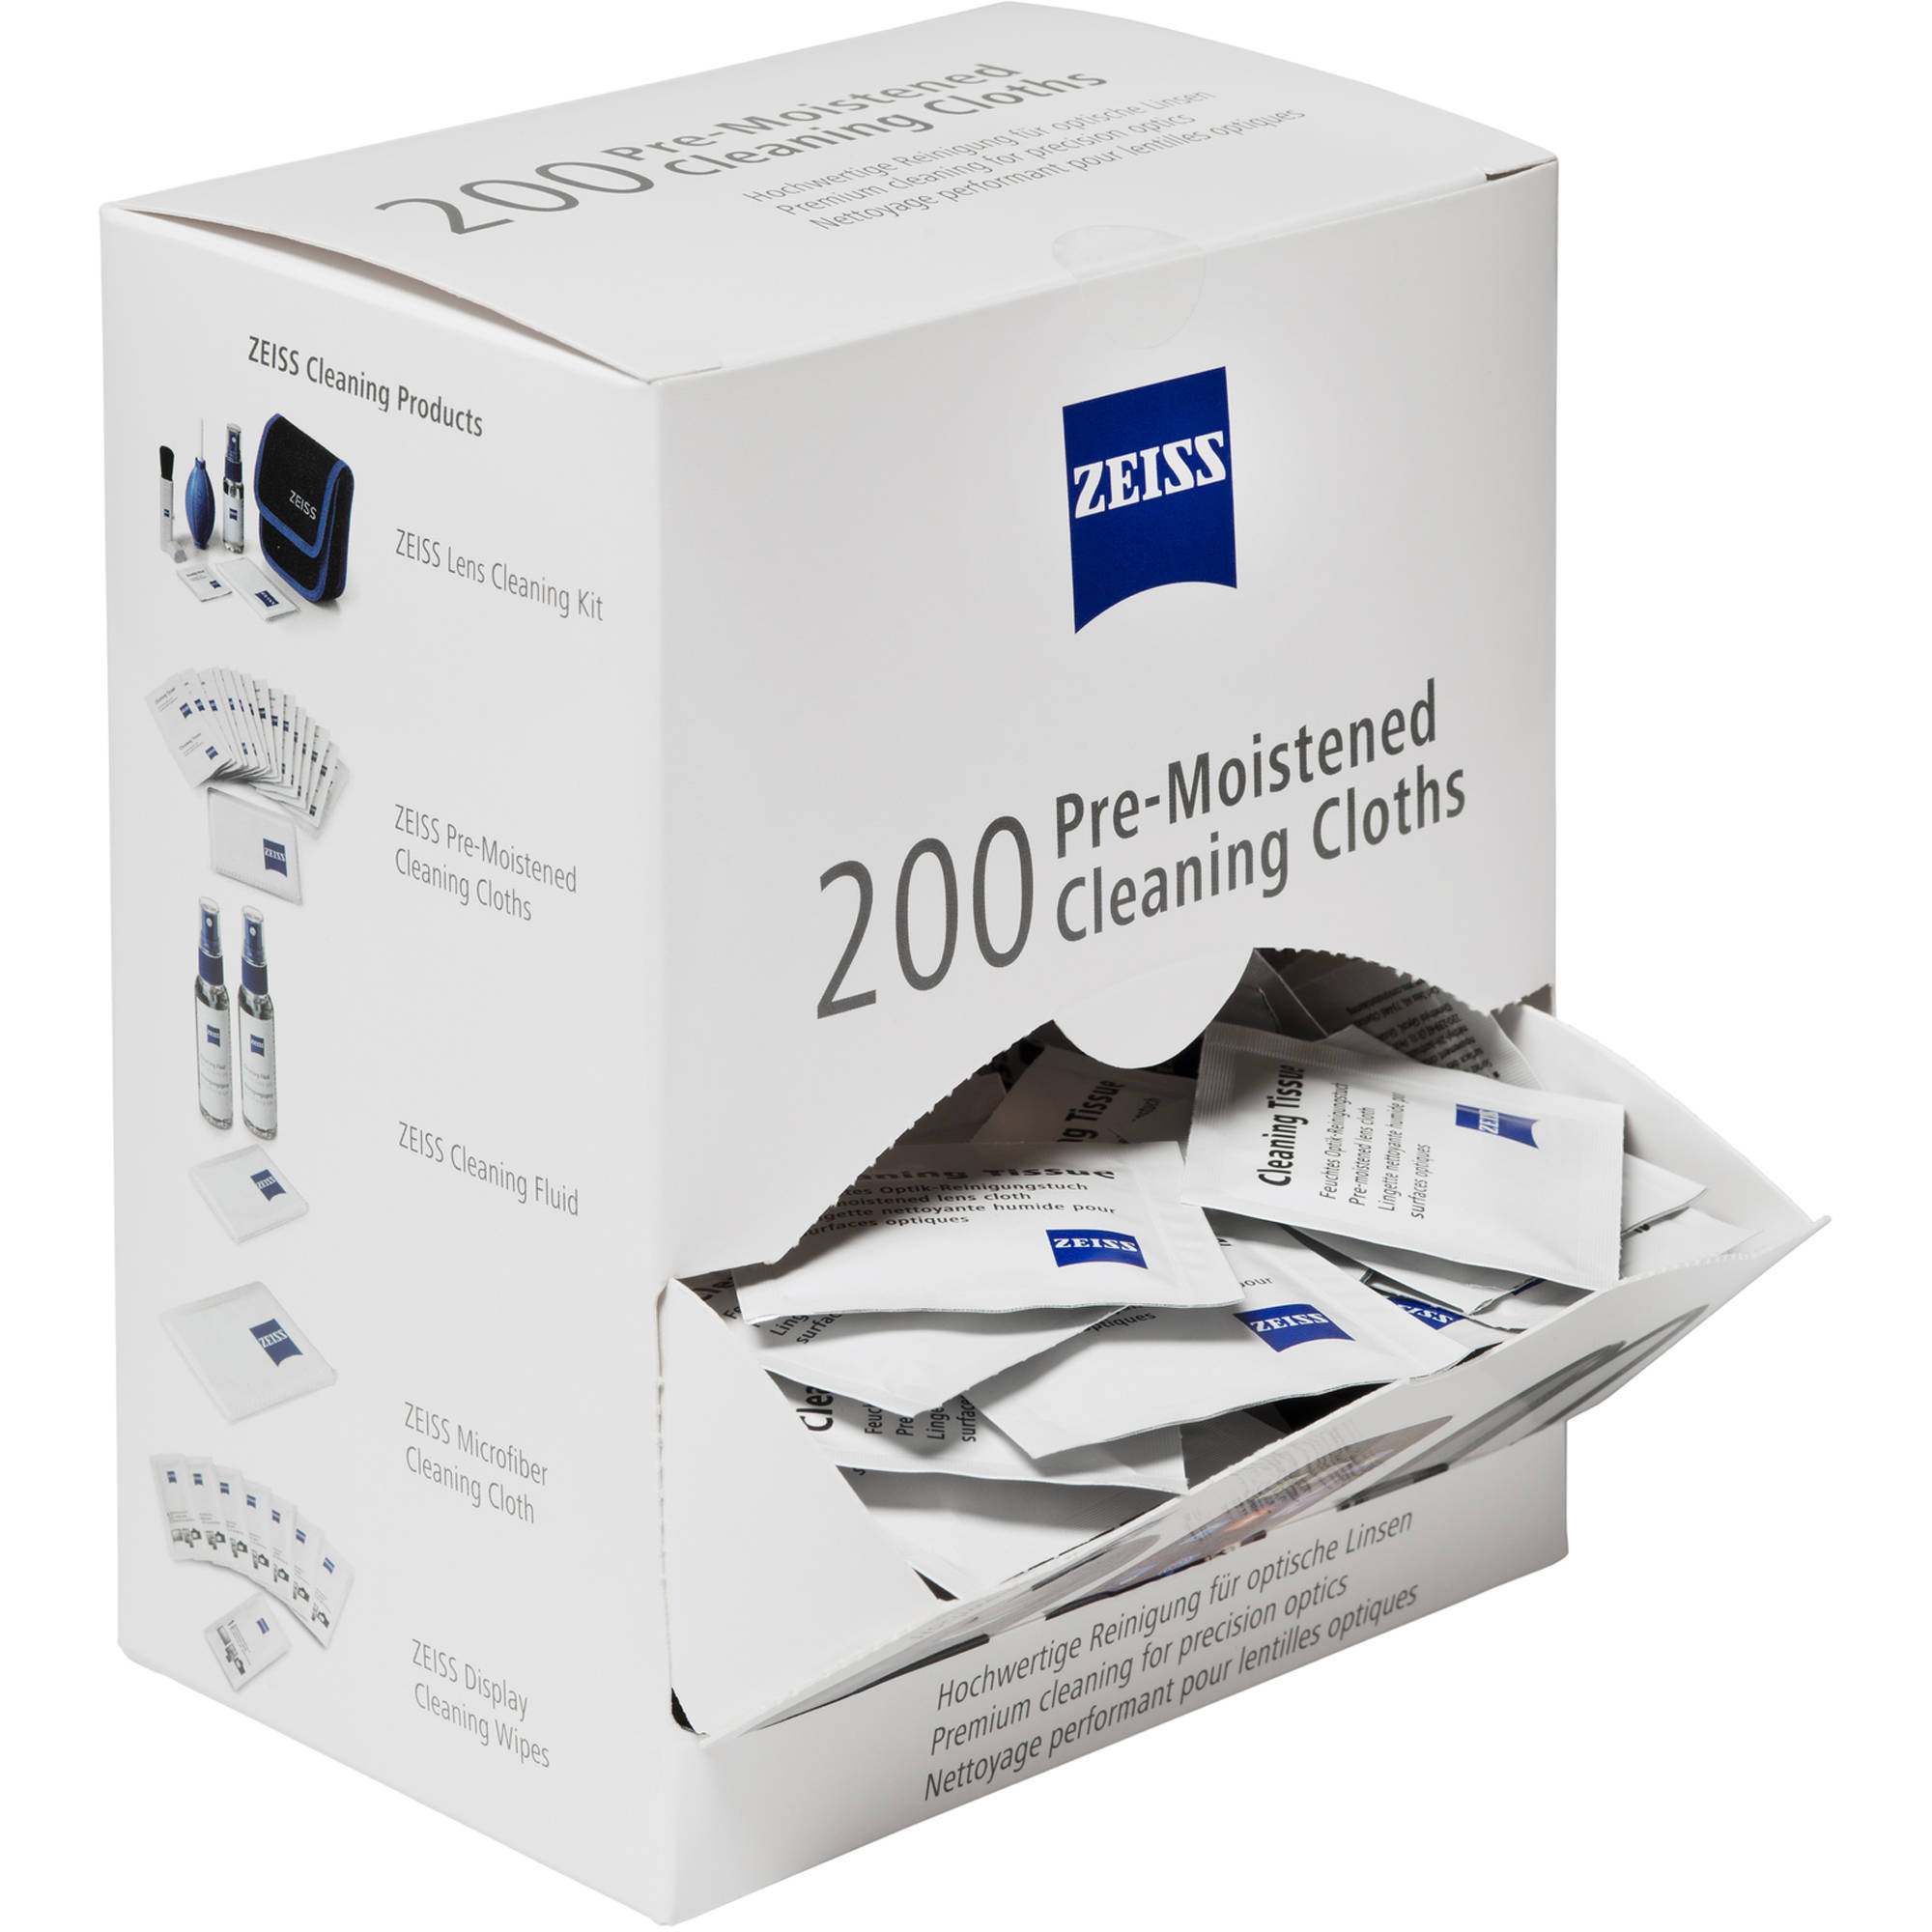 ZEISS Pre-Moistened Cleaning Cloths (Box of 200)